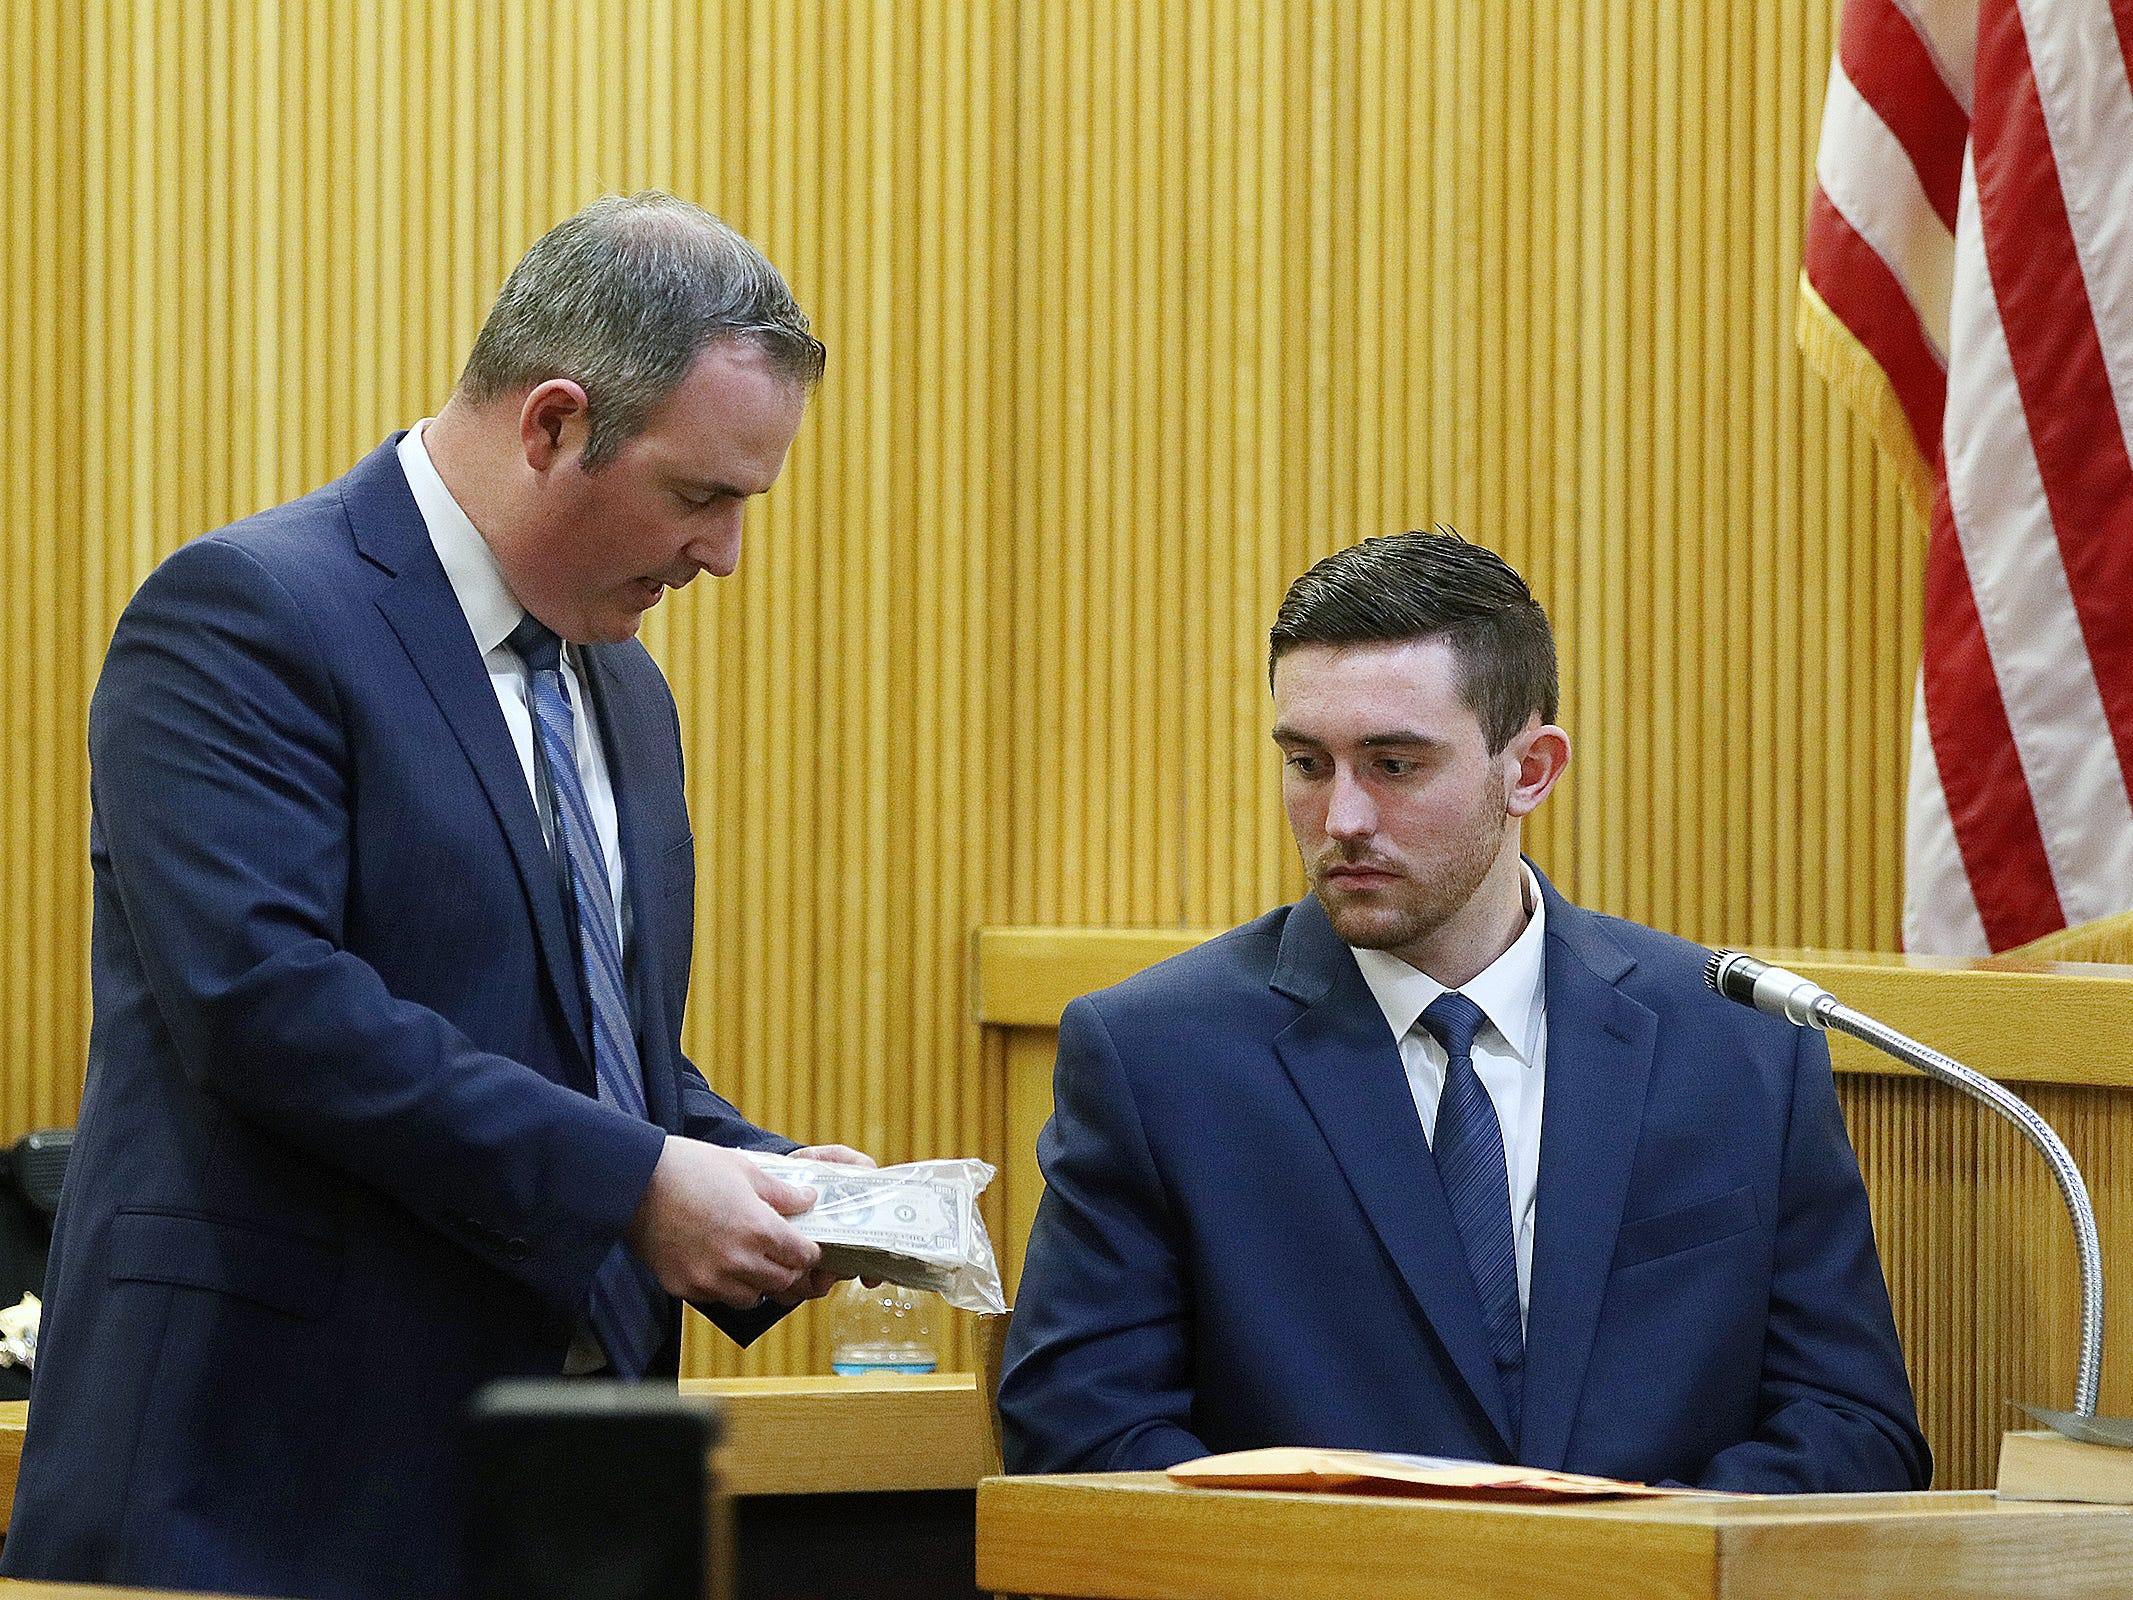 Chris Decker, Monmouth County assistant prosecutor, asks Preston Taylor, who plead guilty to charges in the Sarah Stern case, to identify evidence, which is cash that belonged to Sarah Stern, as he testifies during the trial of Liam McAtasney, who is charged with the murder of former high school classmate, Sarah Stern, before Superior Court Judge Richard W. English at the Monmouth County Courthouse in Freehold, NJ Wednesday January 23, 2019.